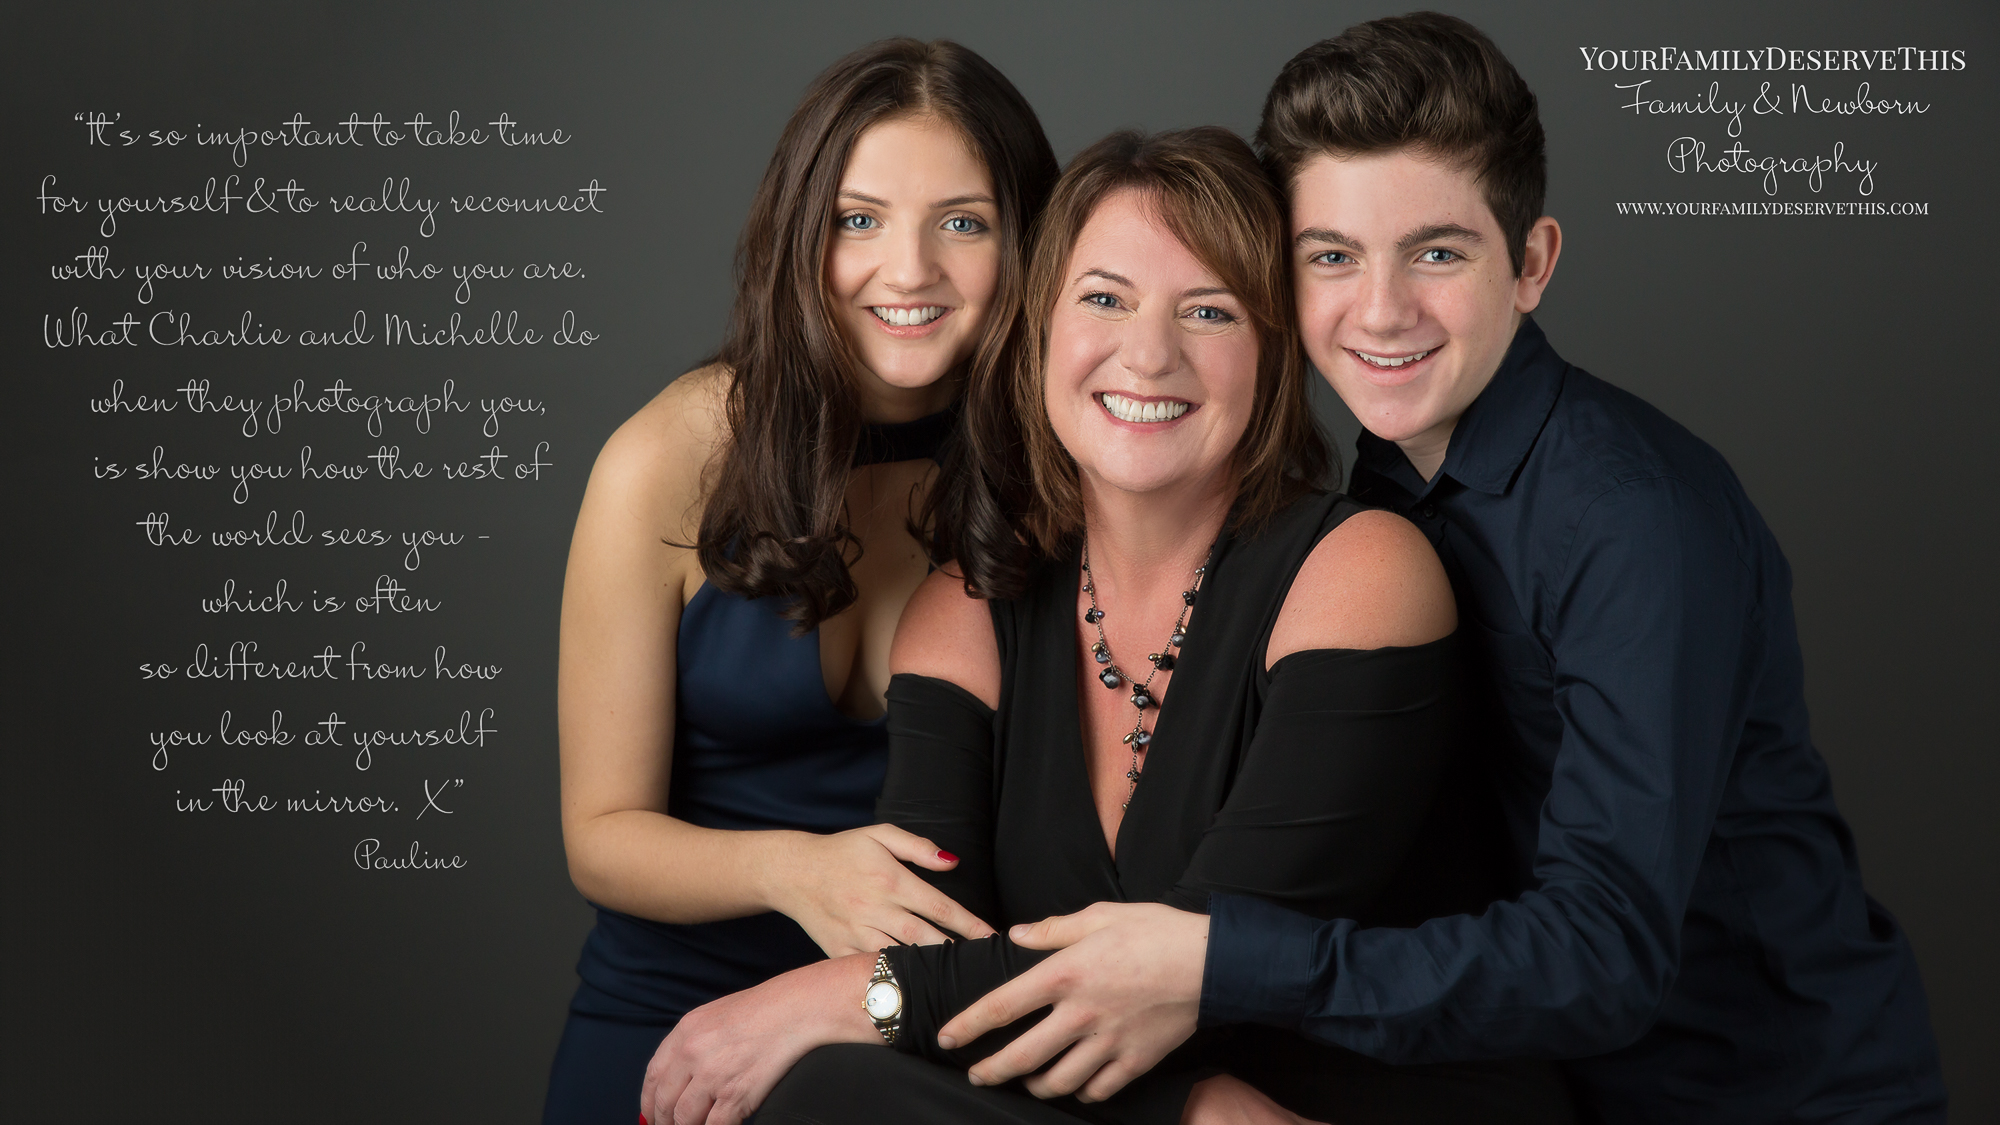 Mum being hugged by son and daughter - photographer YourFamilyDeserveThis Photography Studio Tadley Hampshire.jpg